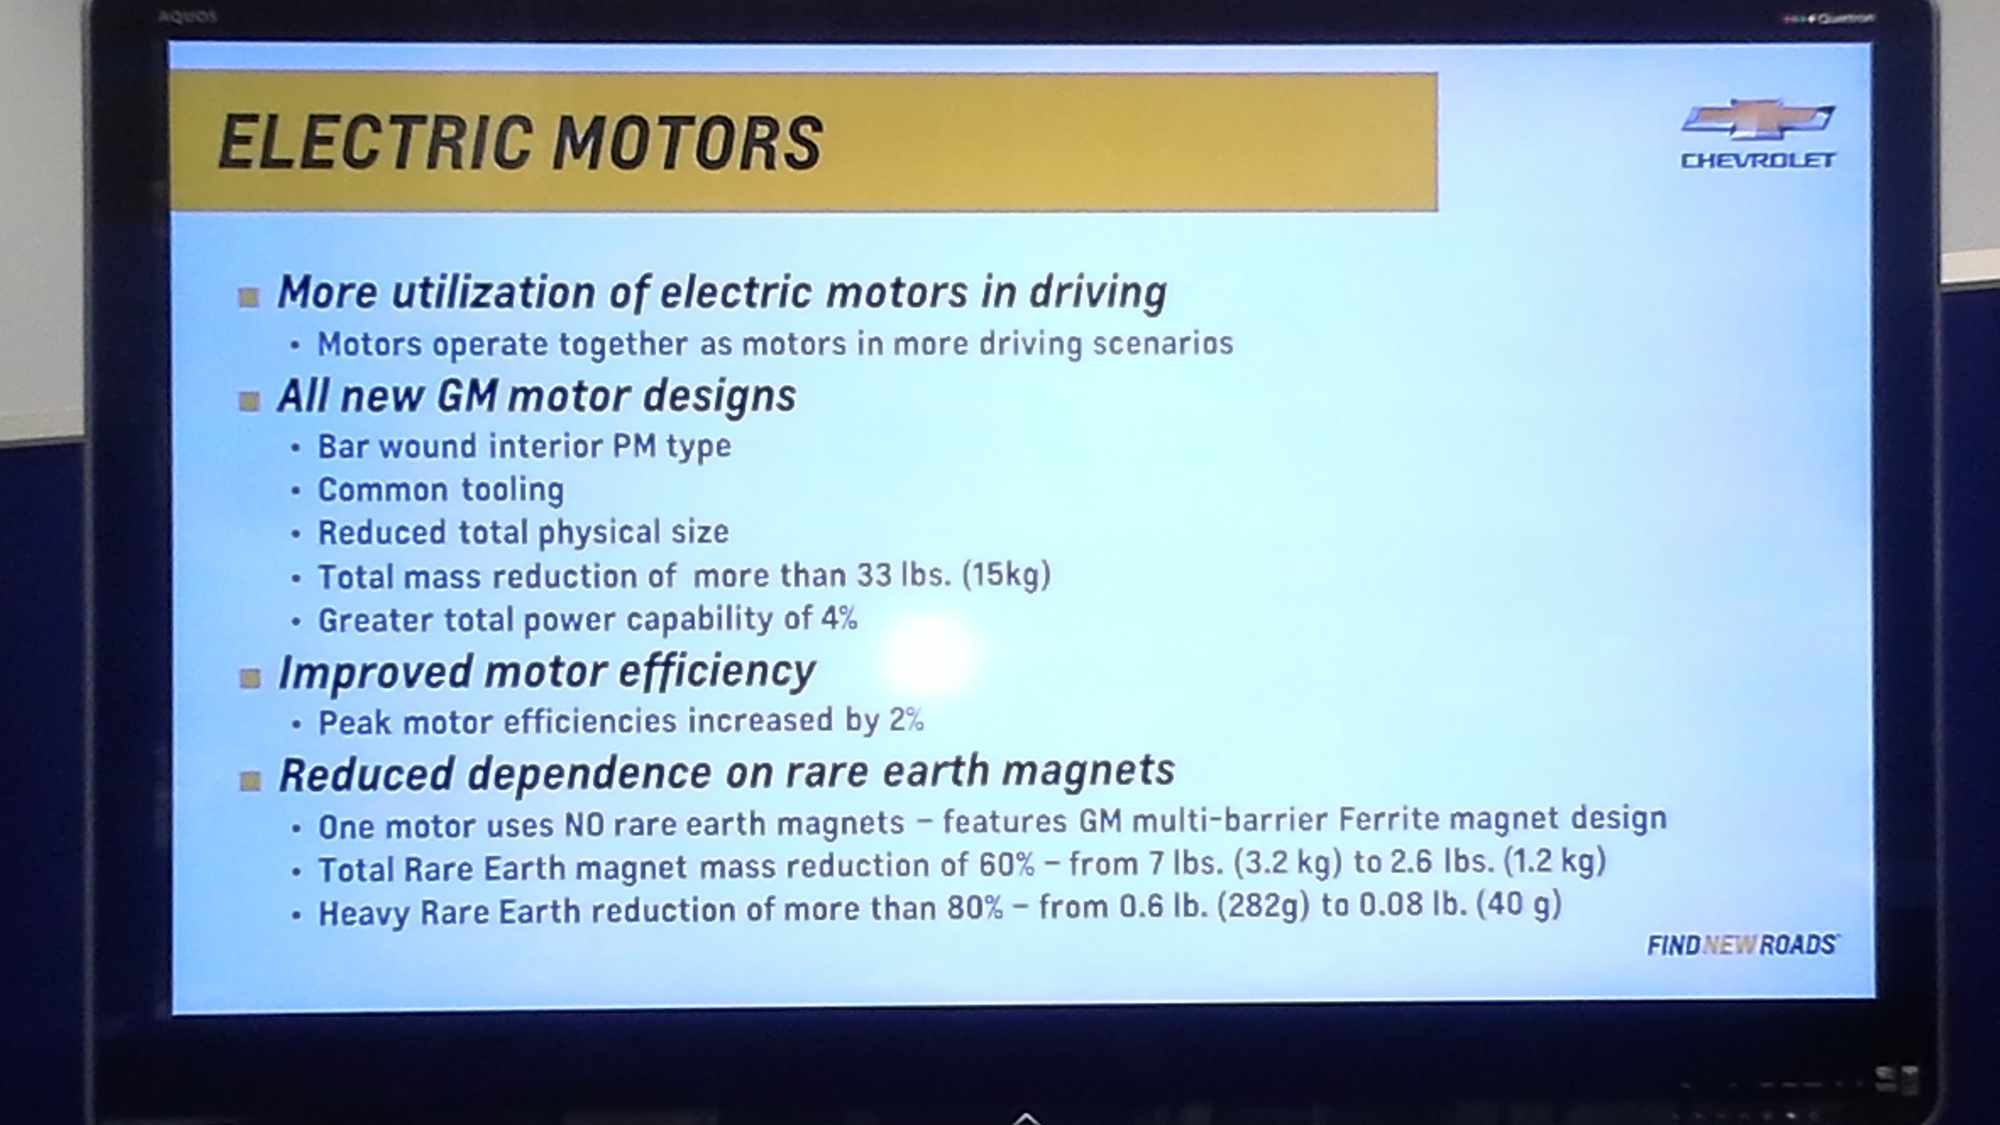 2016 Chevrolet Volt powertrain - electric motors detail advance briefing, Oct 2014